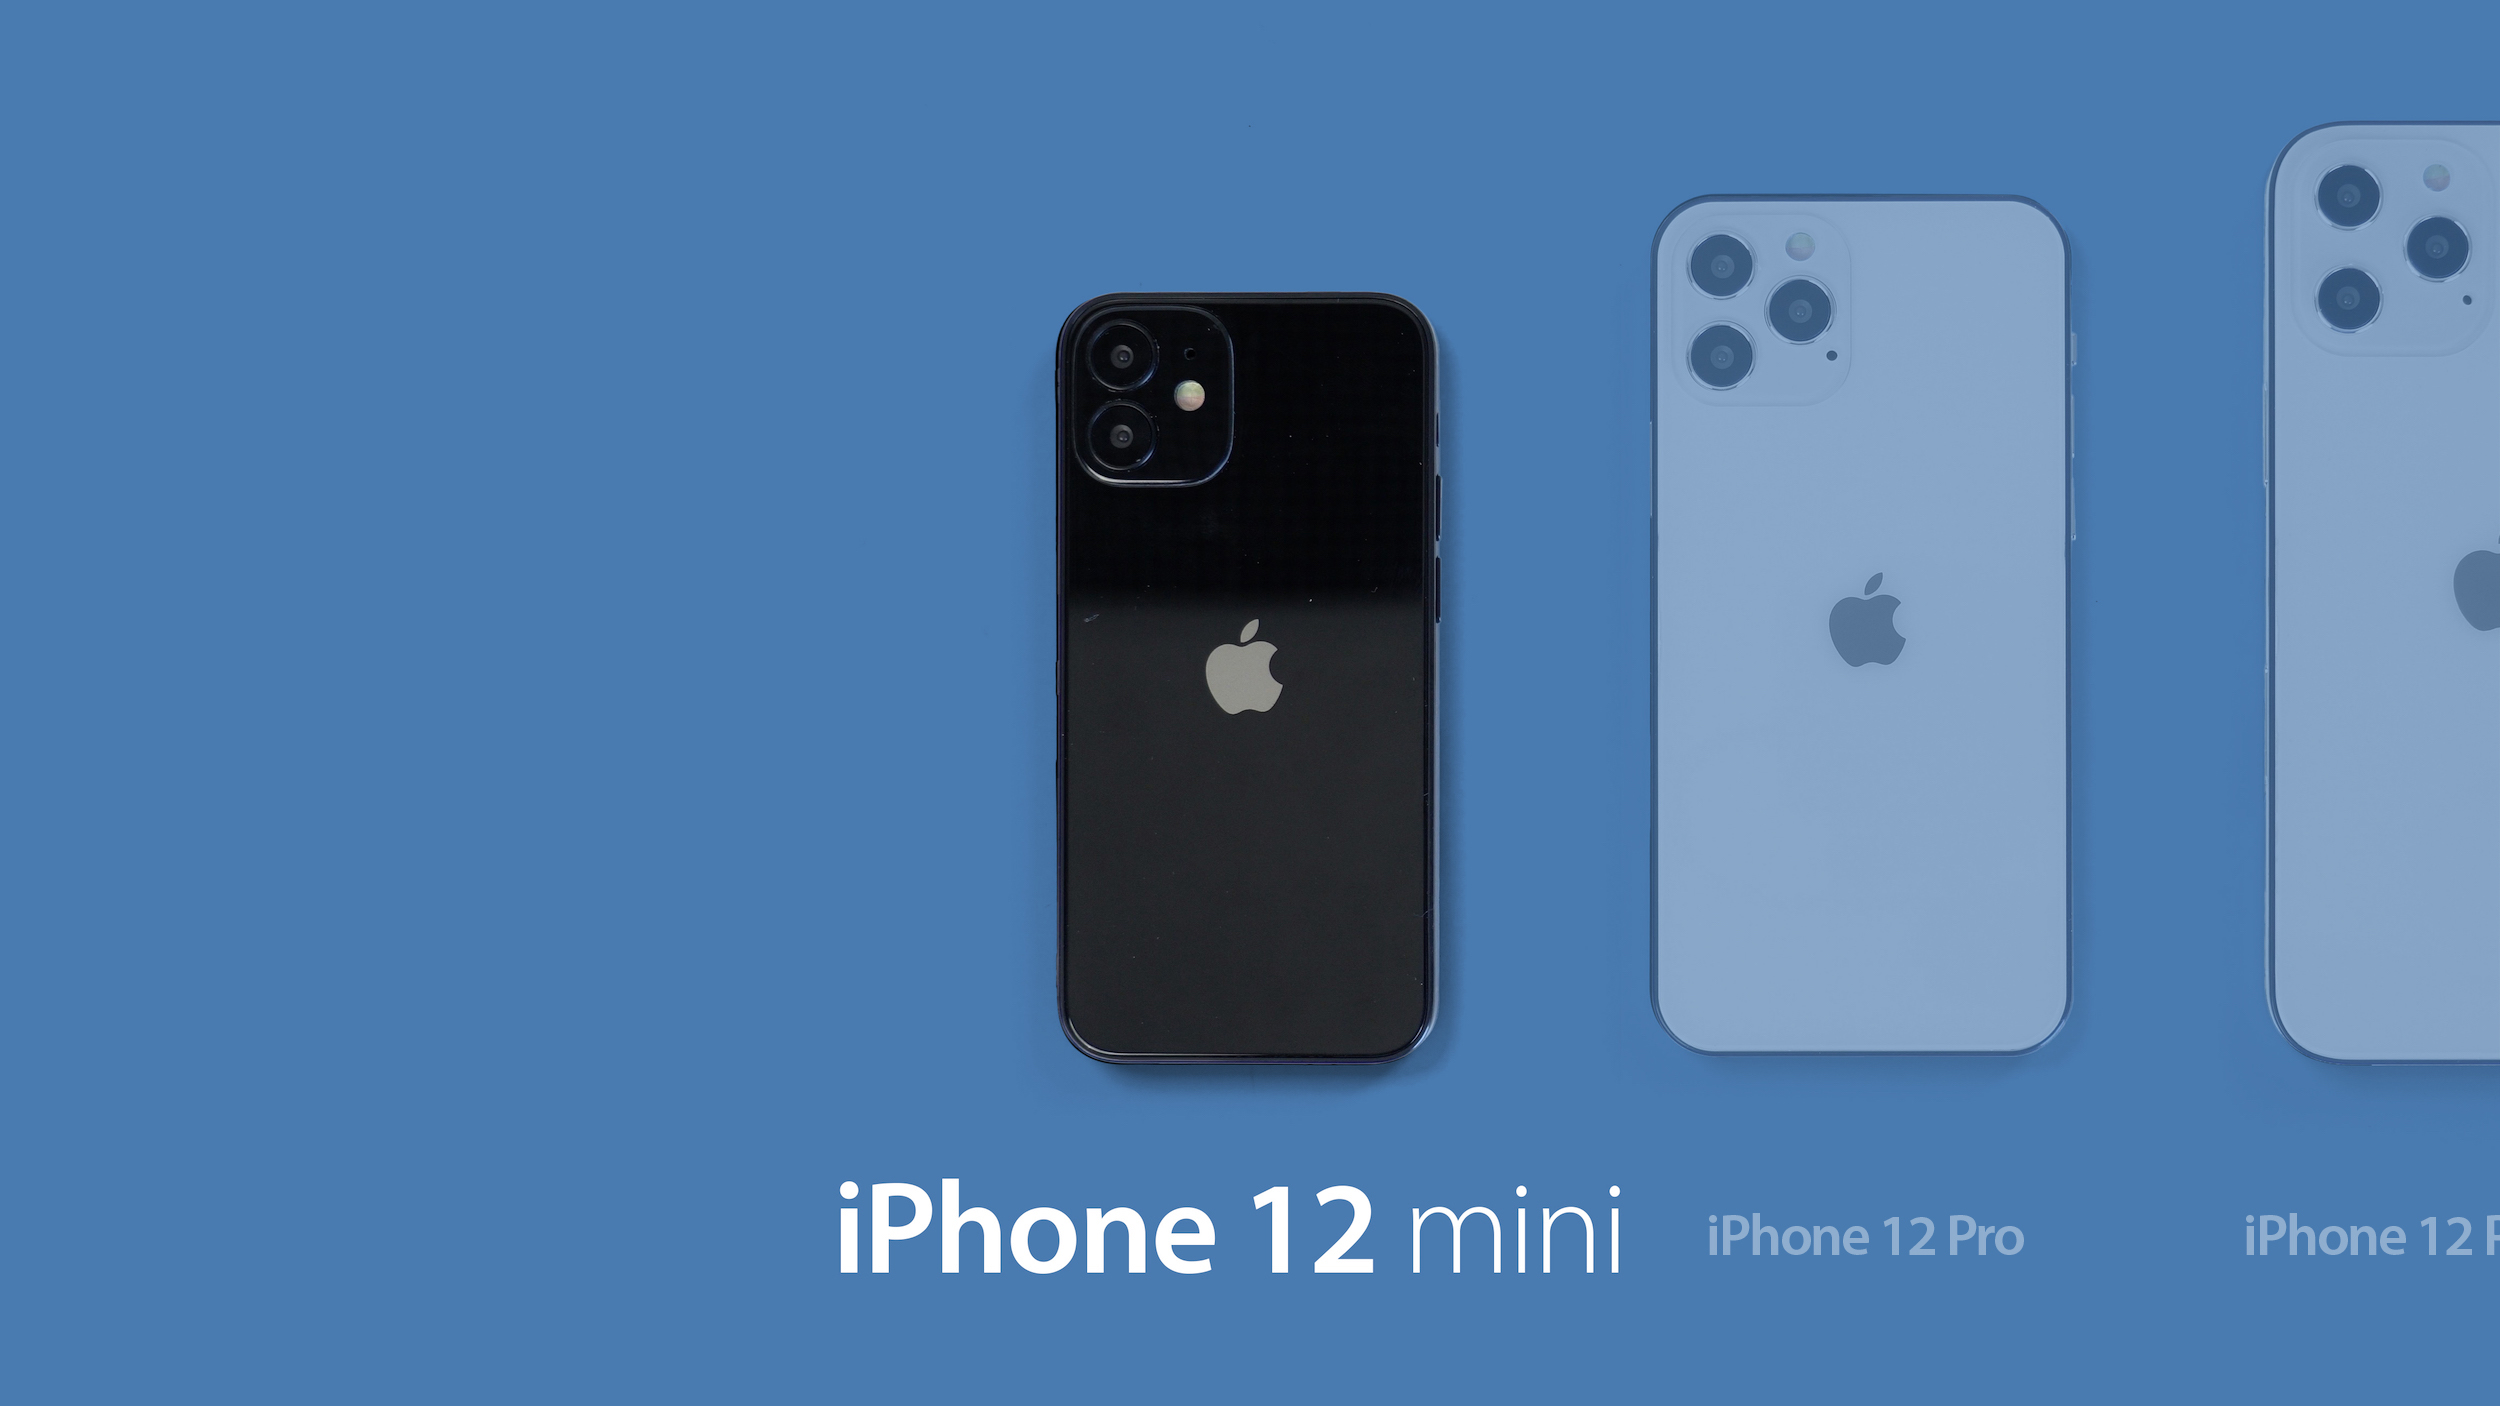 photo of Leaker: 'iPhone 12 mini' and iPhone 12 Storage Capacities Start at 64GB, Pro Models at 128GB image